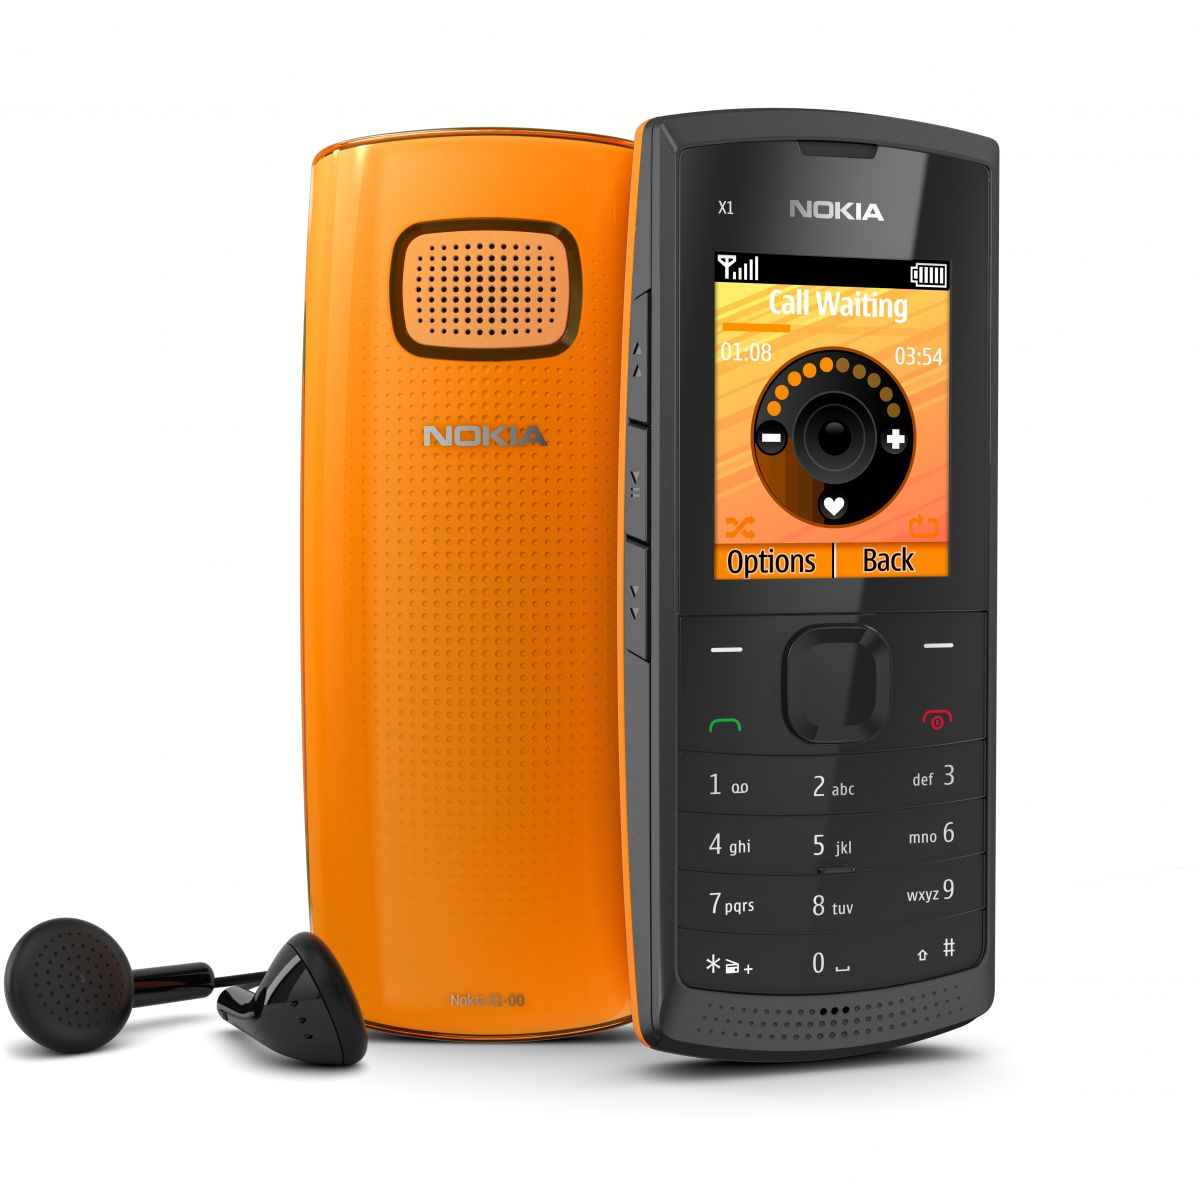 http://www.gsmaceh.com/2012/11/how-to-flashing-nokia-x1-01-rm-713-use.html